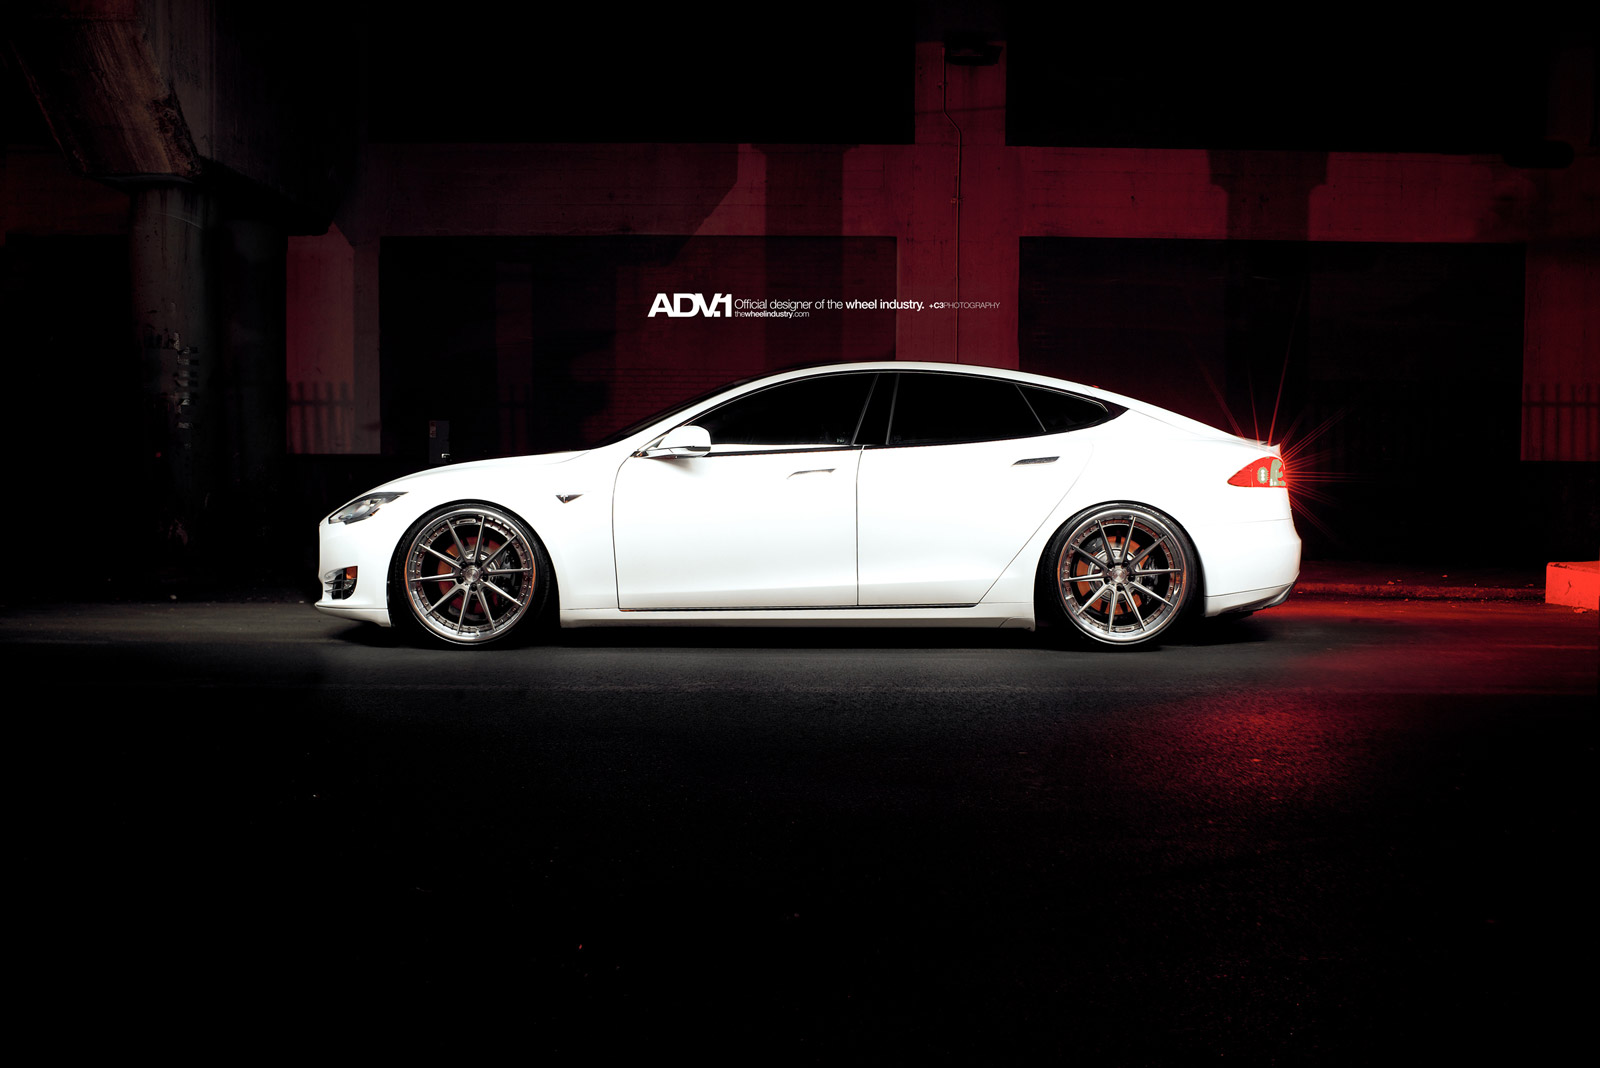 Tesla Model S ADV.1 Aftermarket Wheel